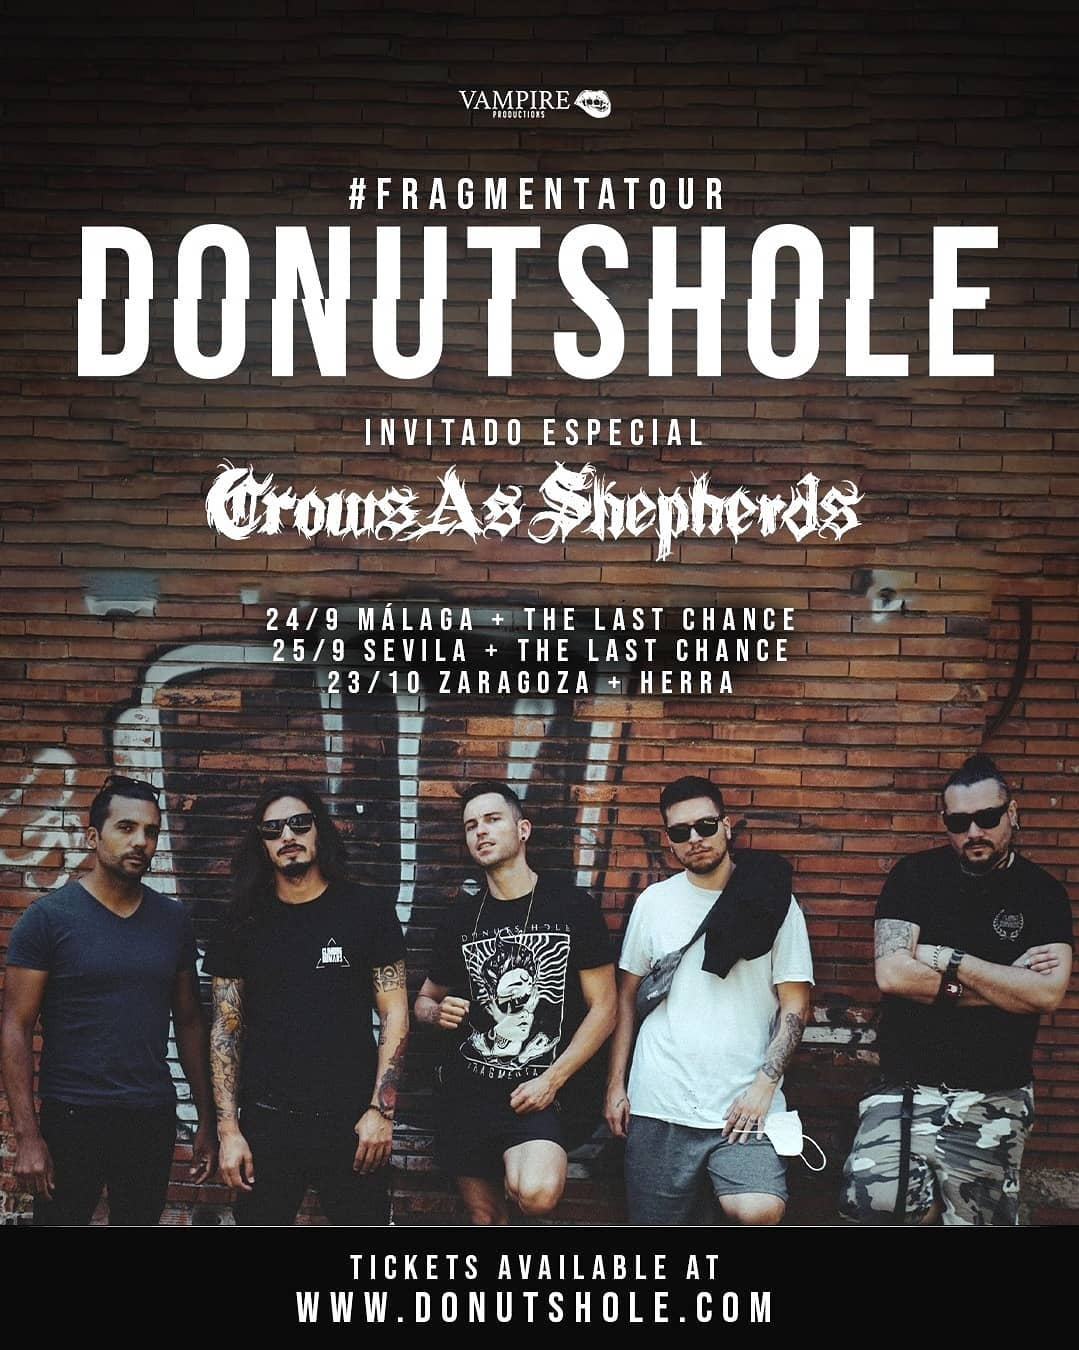 Donuts Hole + Crows As Shepherds + the last chance  / herra